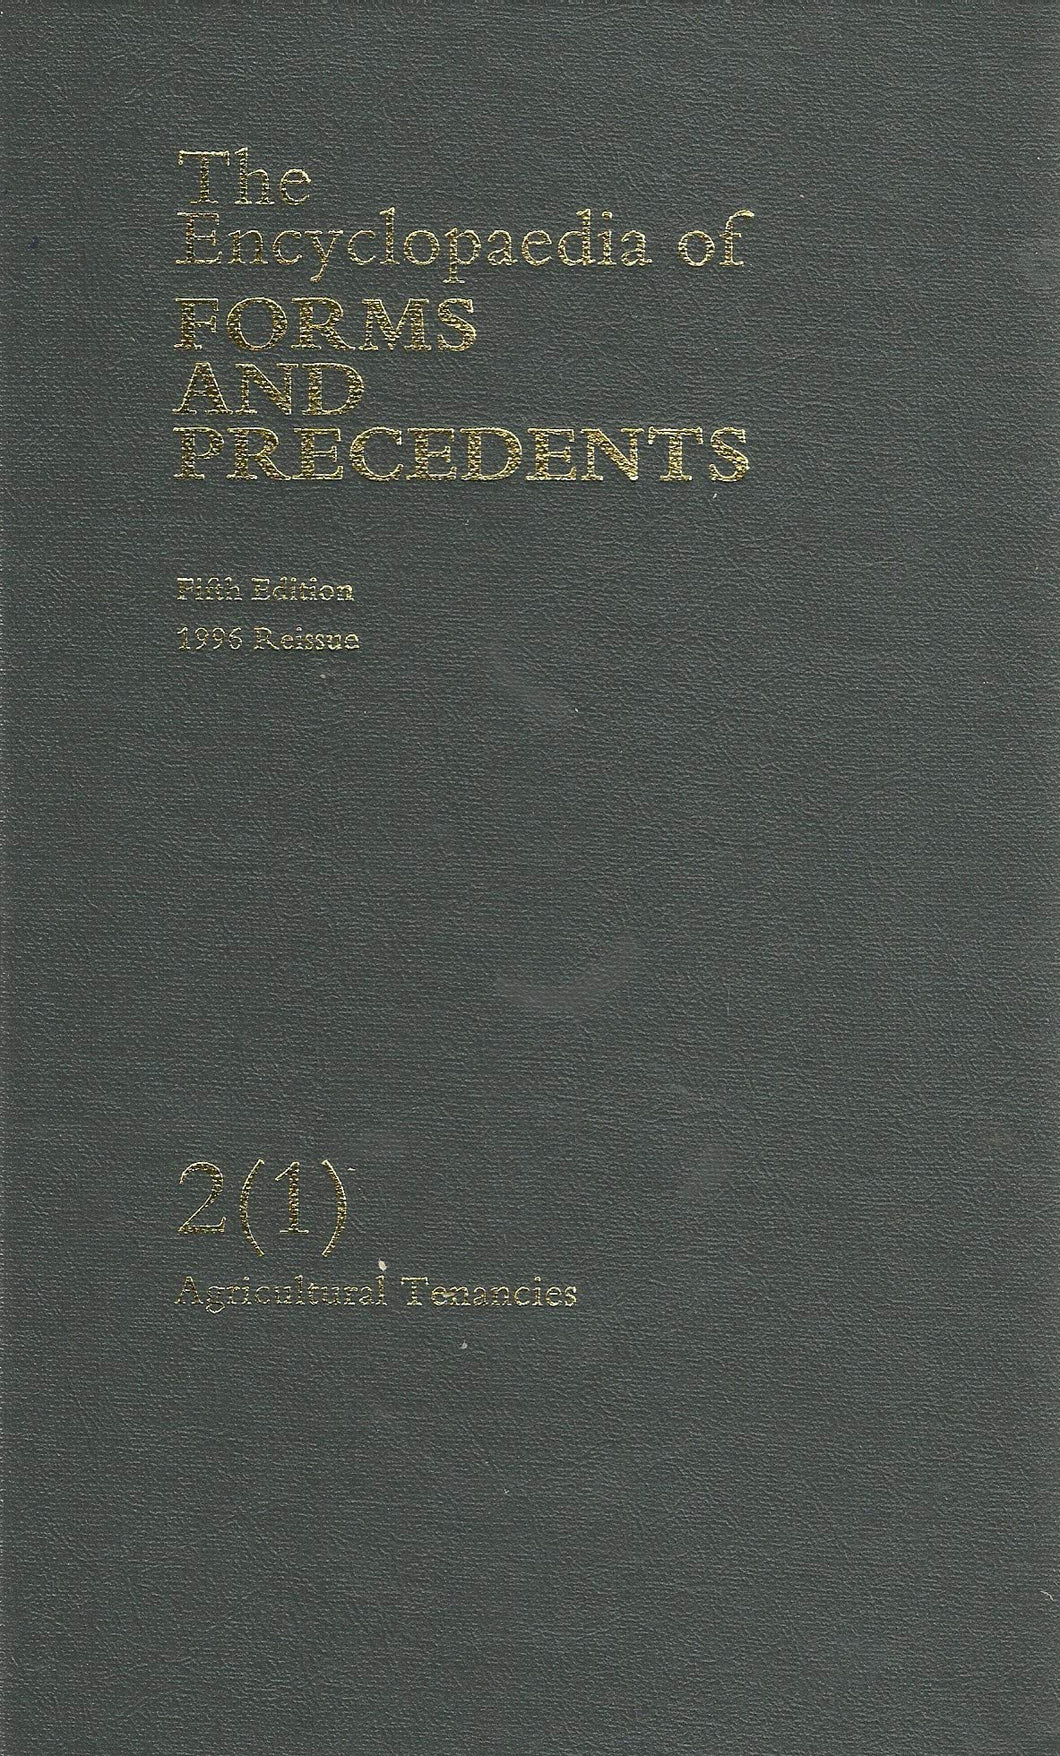 The Encyclopedia of Forms and Precedents Fifth edition 1996 Reissue Volume 2(1): Agricultural Tenancies